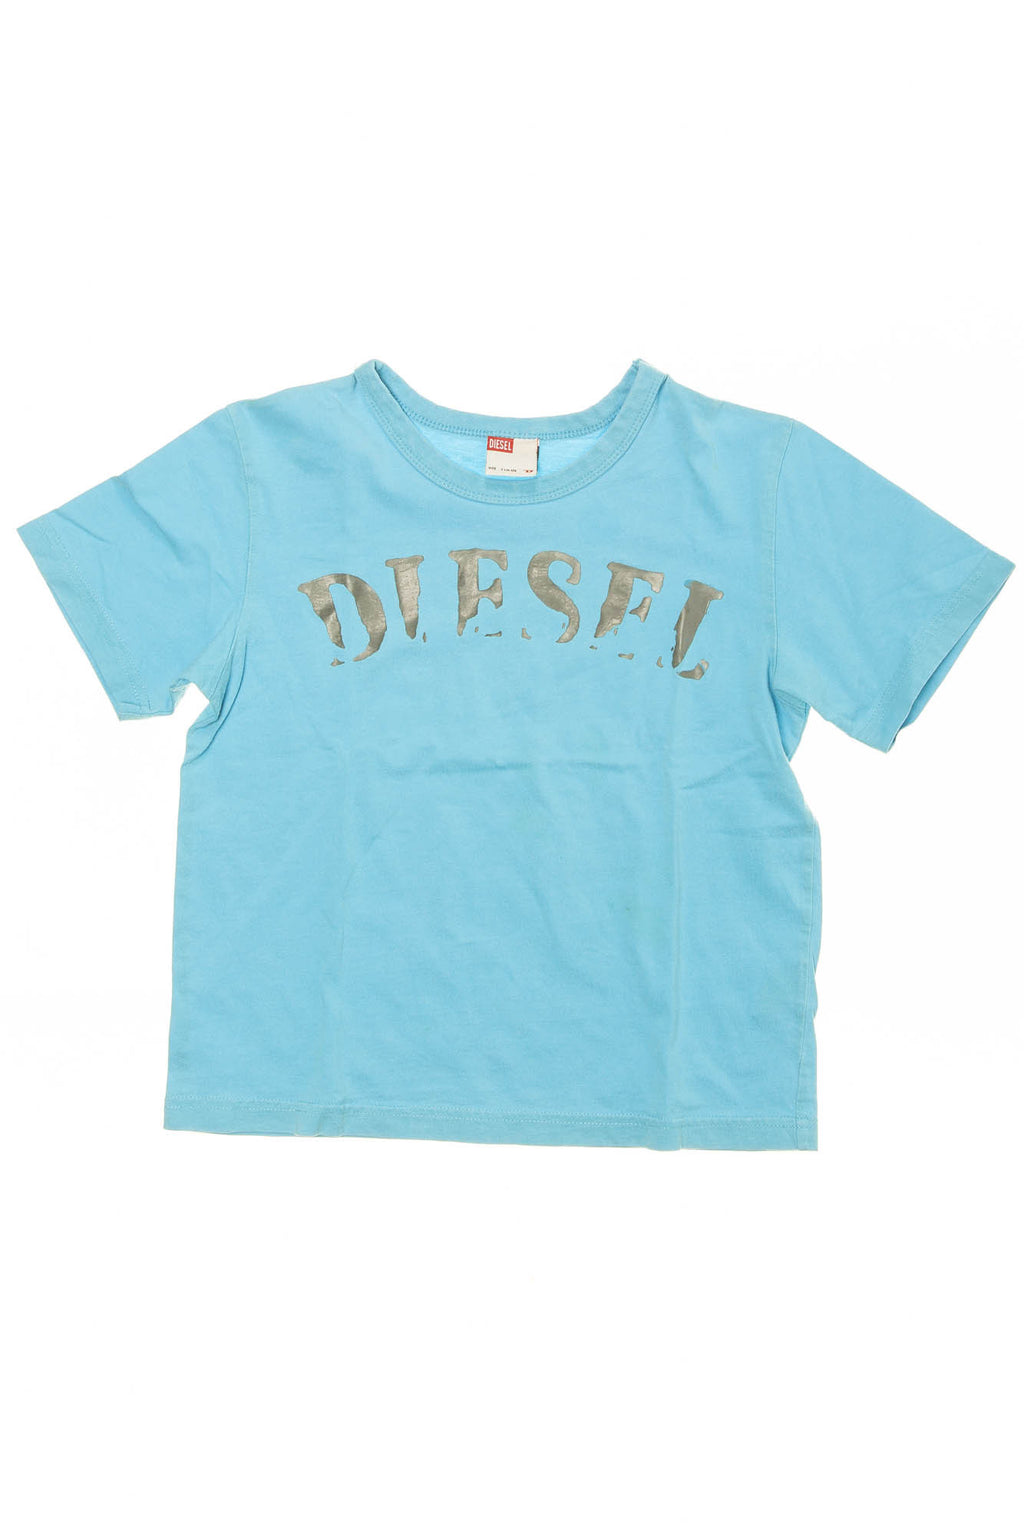 Diesel - Blue Short Sleeve Graphic TShirt - 7